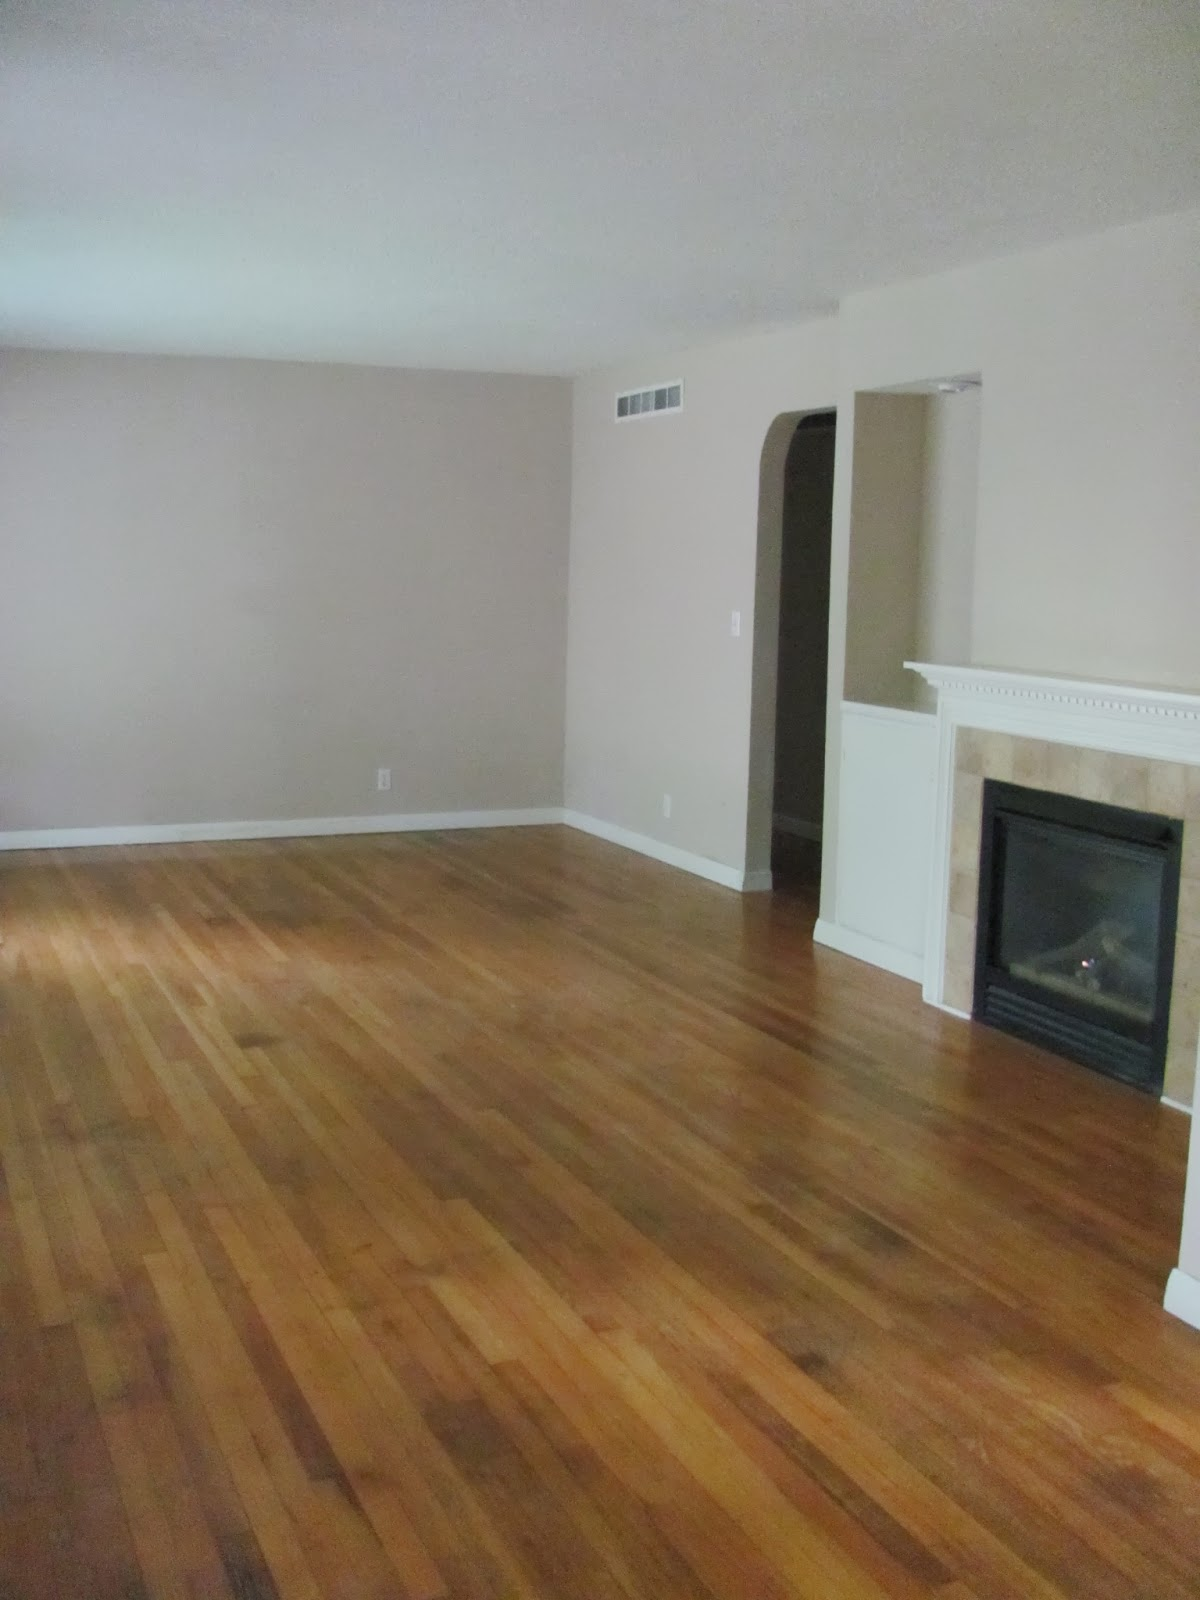 The floors are clean, shiny, and empty in the living room of the old house